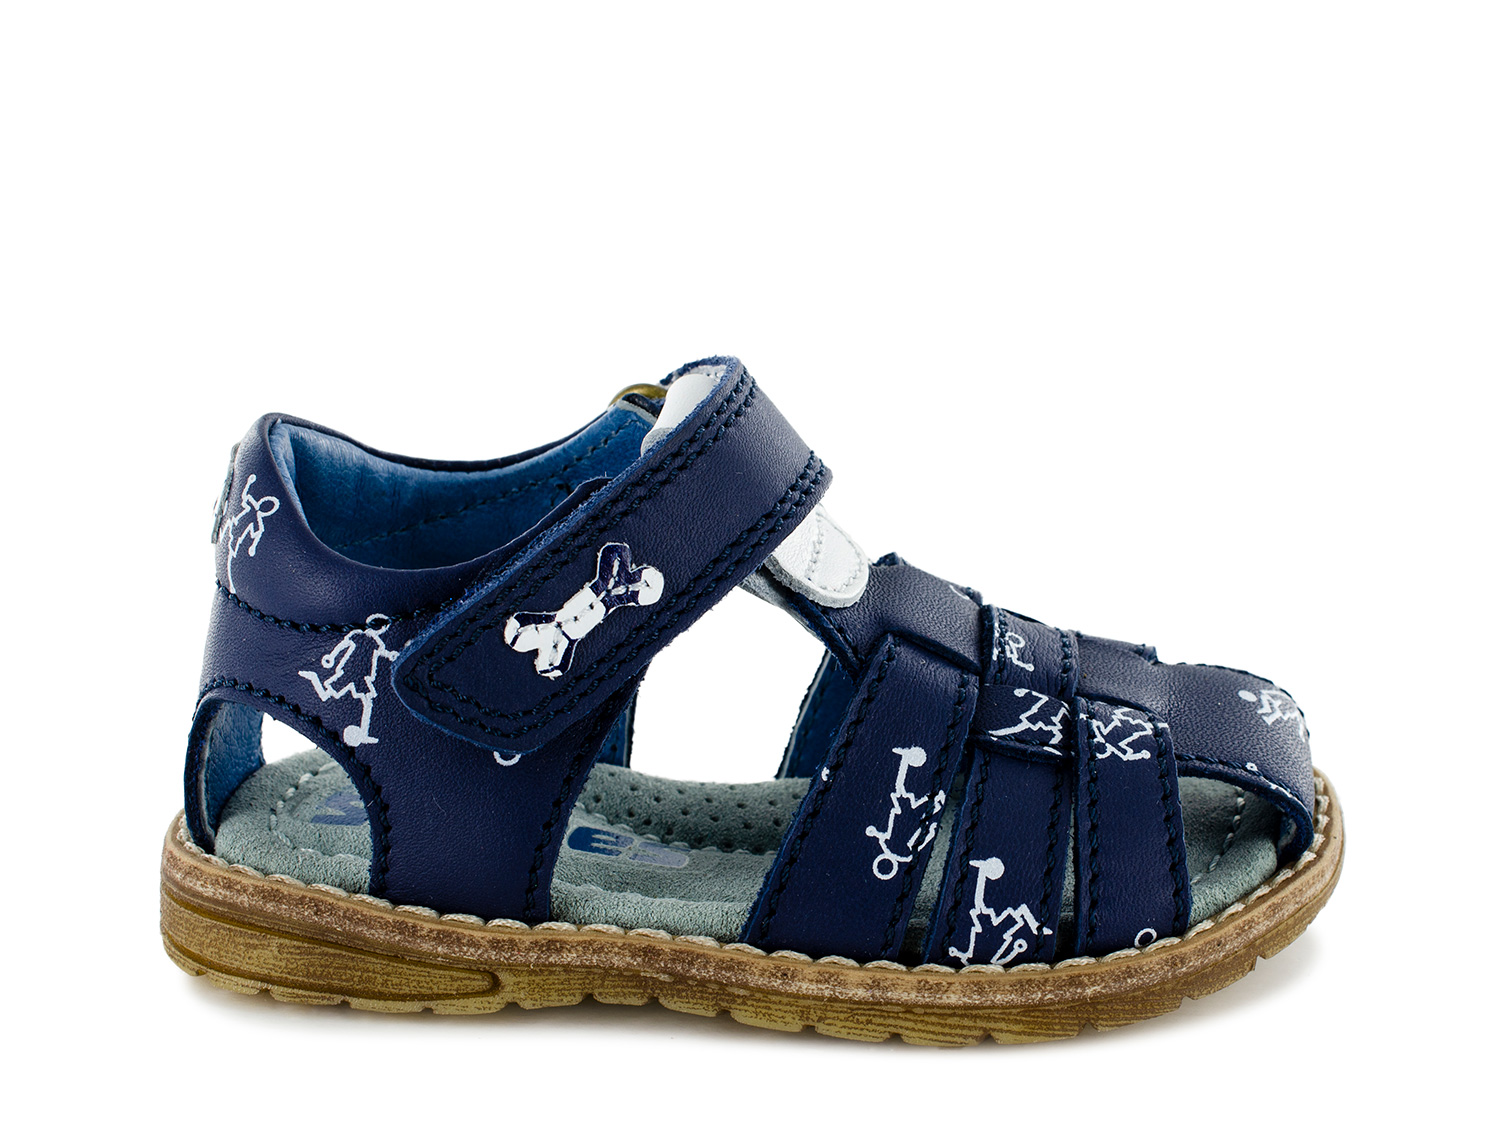 DOCU vit navy + white